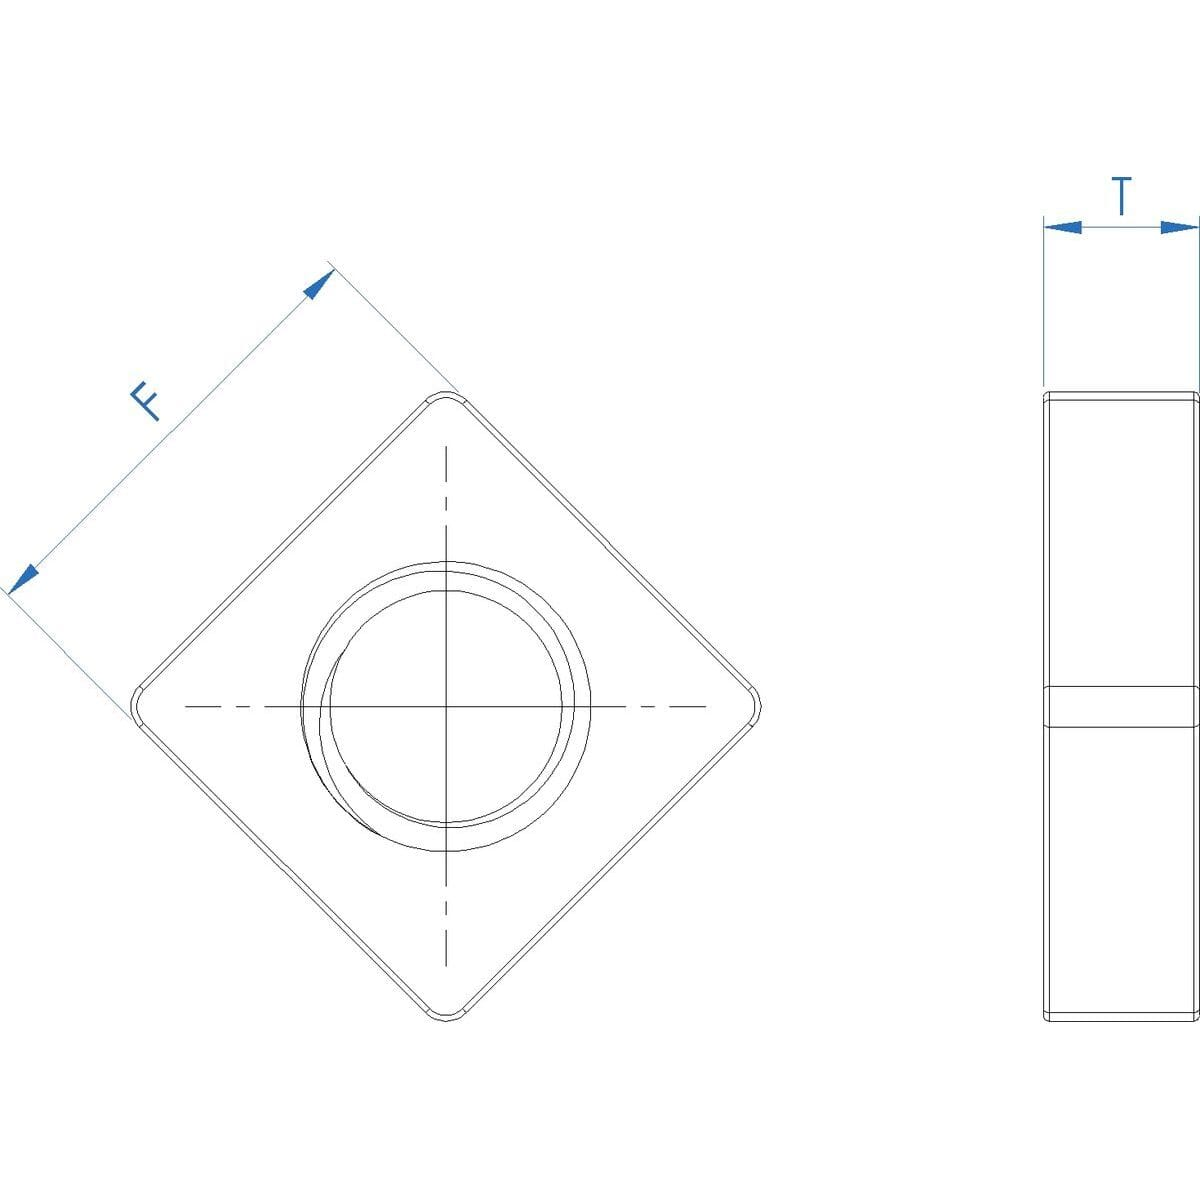 M6 Flat Square Nuts (DIN 562) - Marine Stainless Steel (A4) Drawing